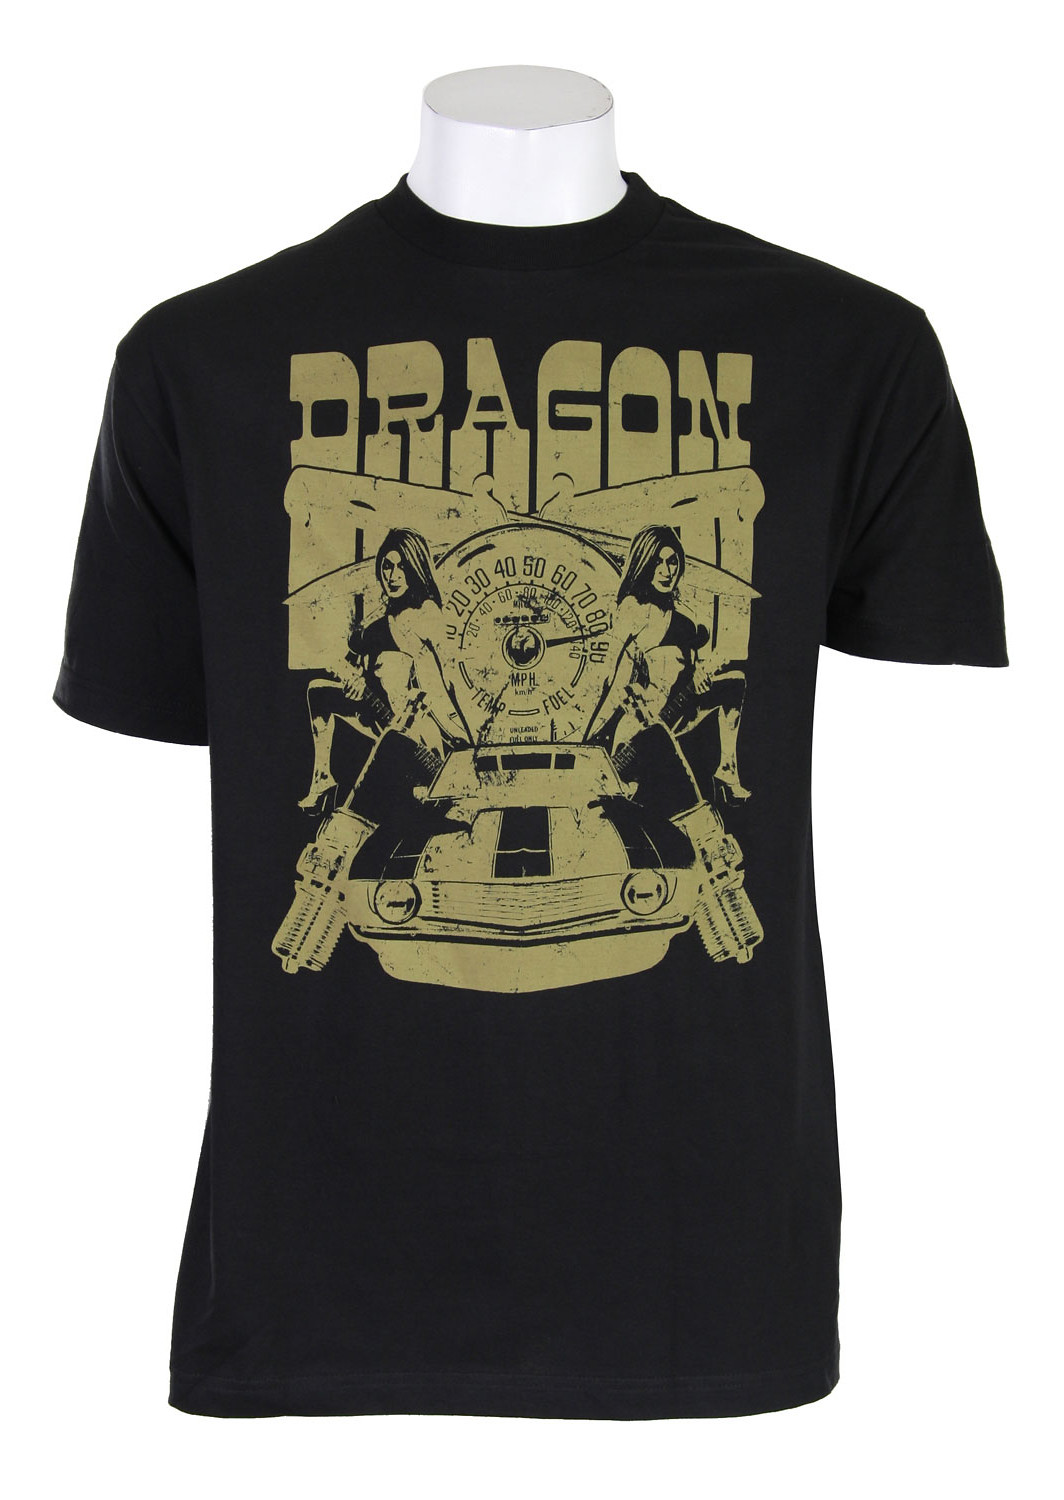 Dragon Mean Machine T-Shirt Black  dragon-meanmachine-t-blk-08.jpg